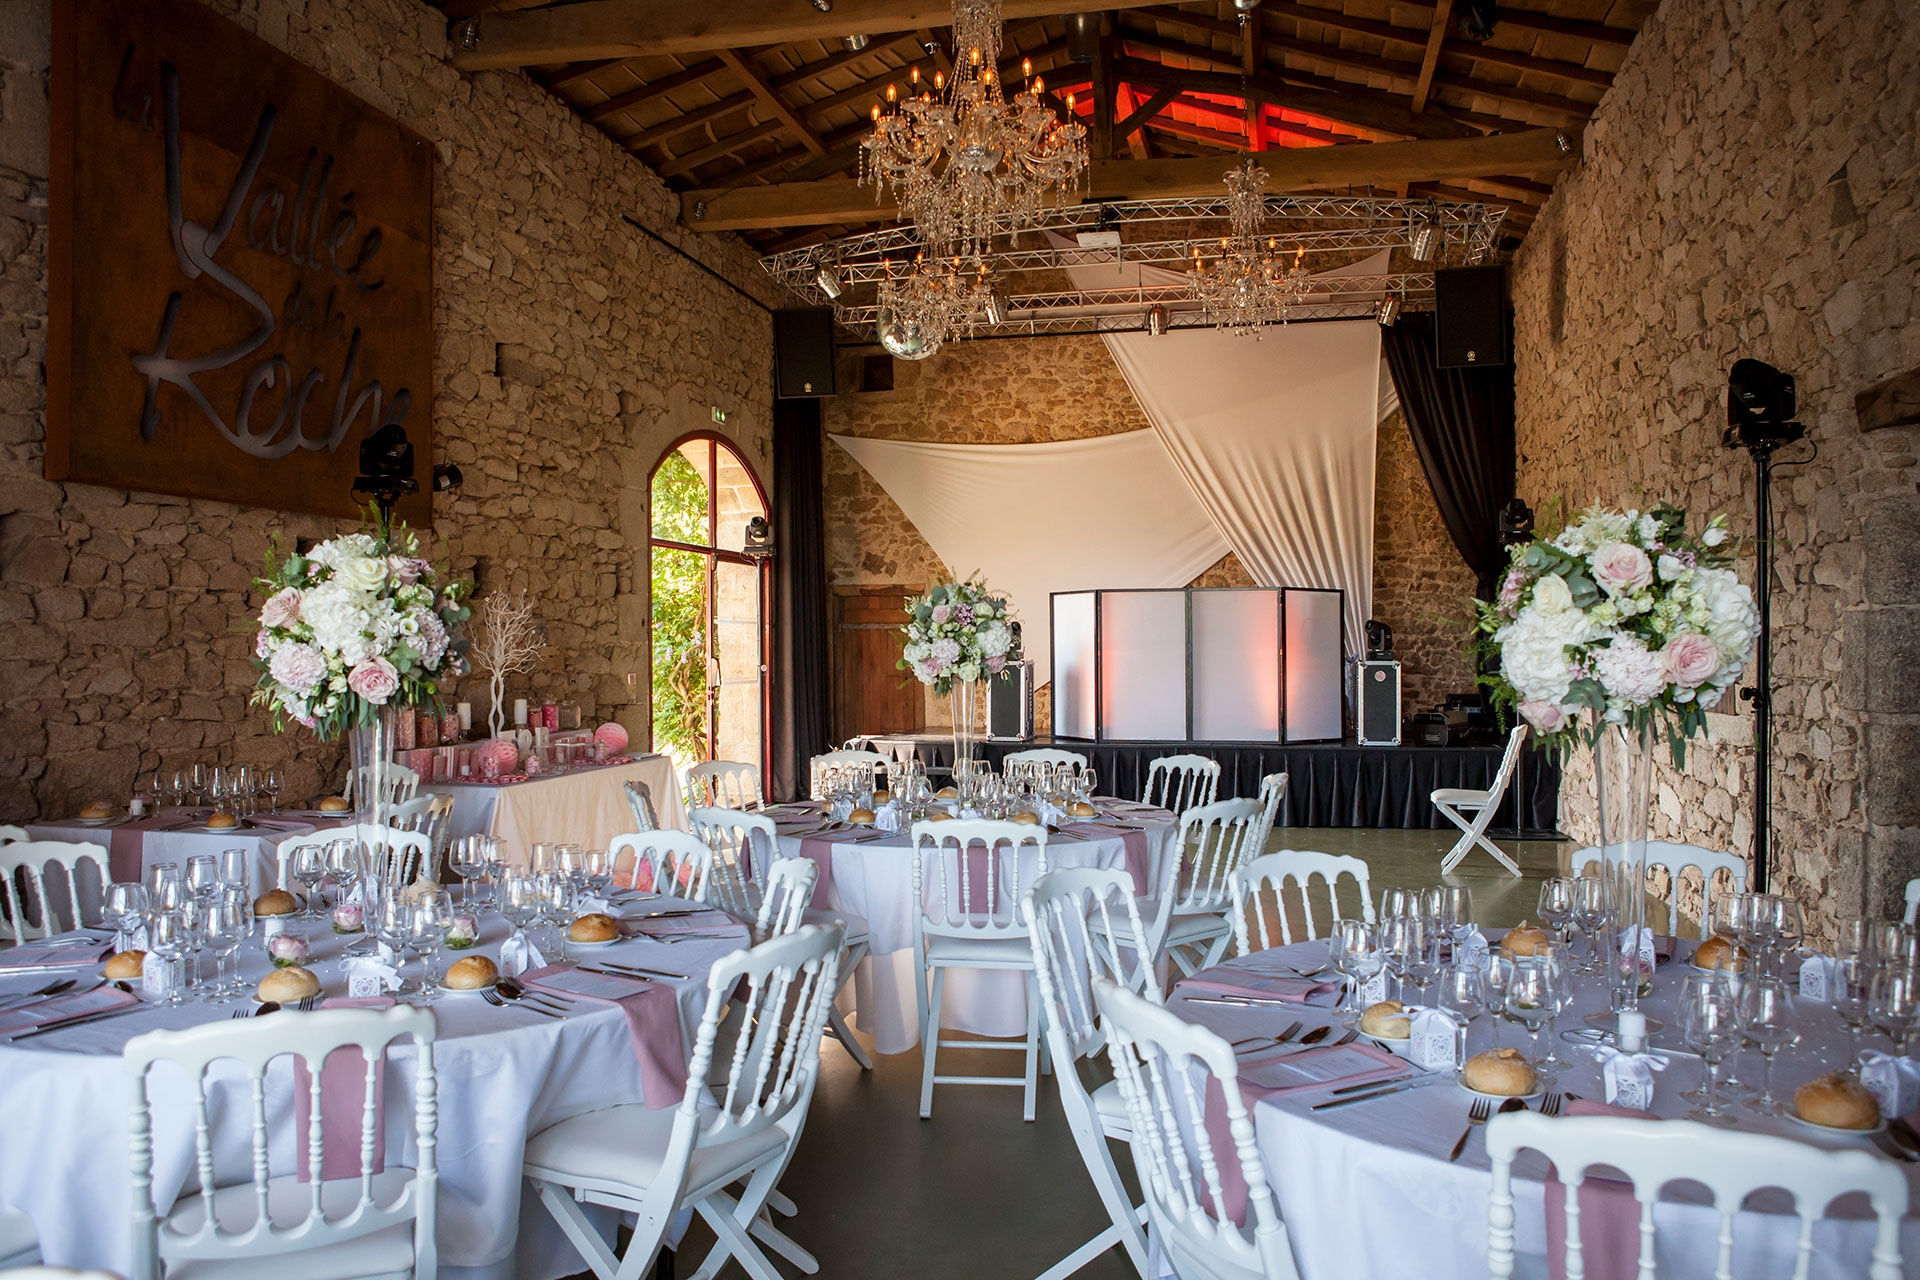 particuliers-evenements-mariage-oui-tiphaine&rudy-58